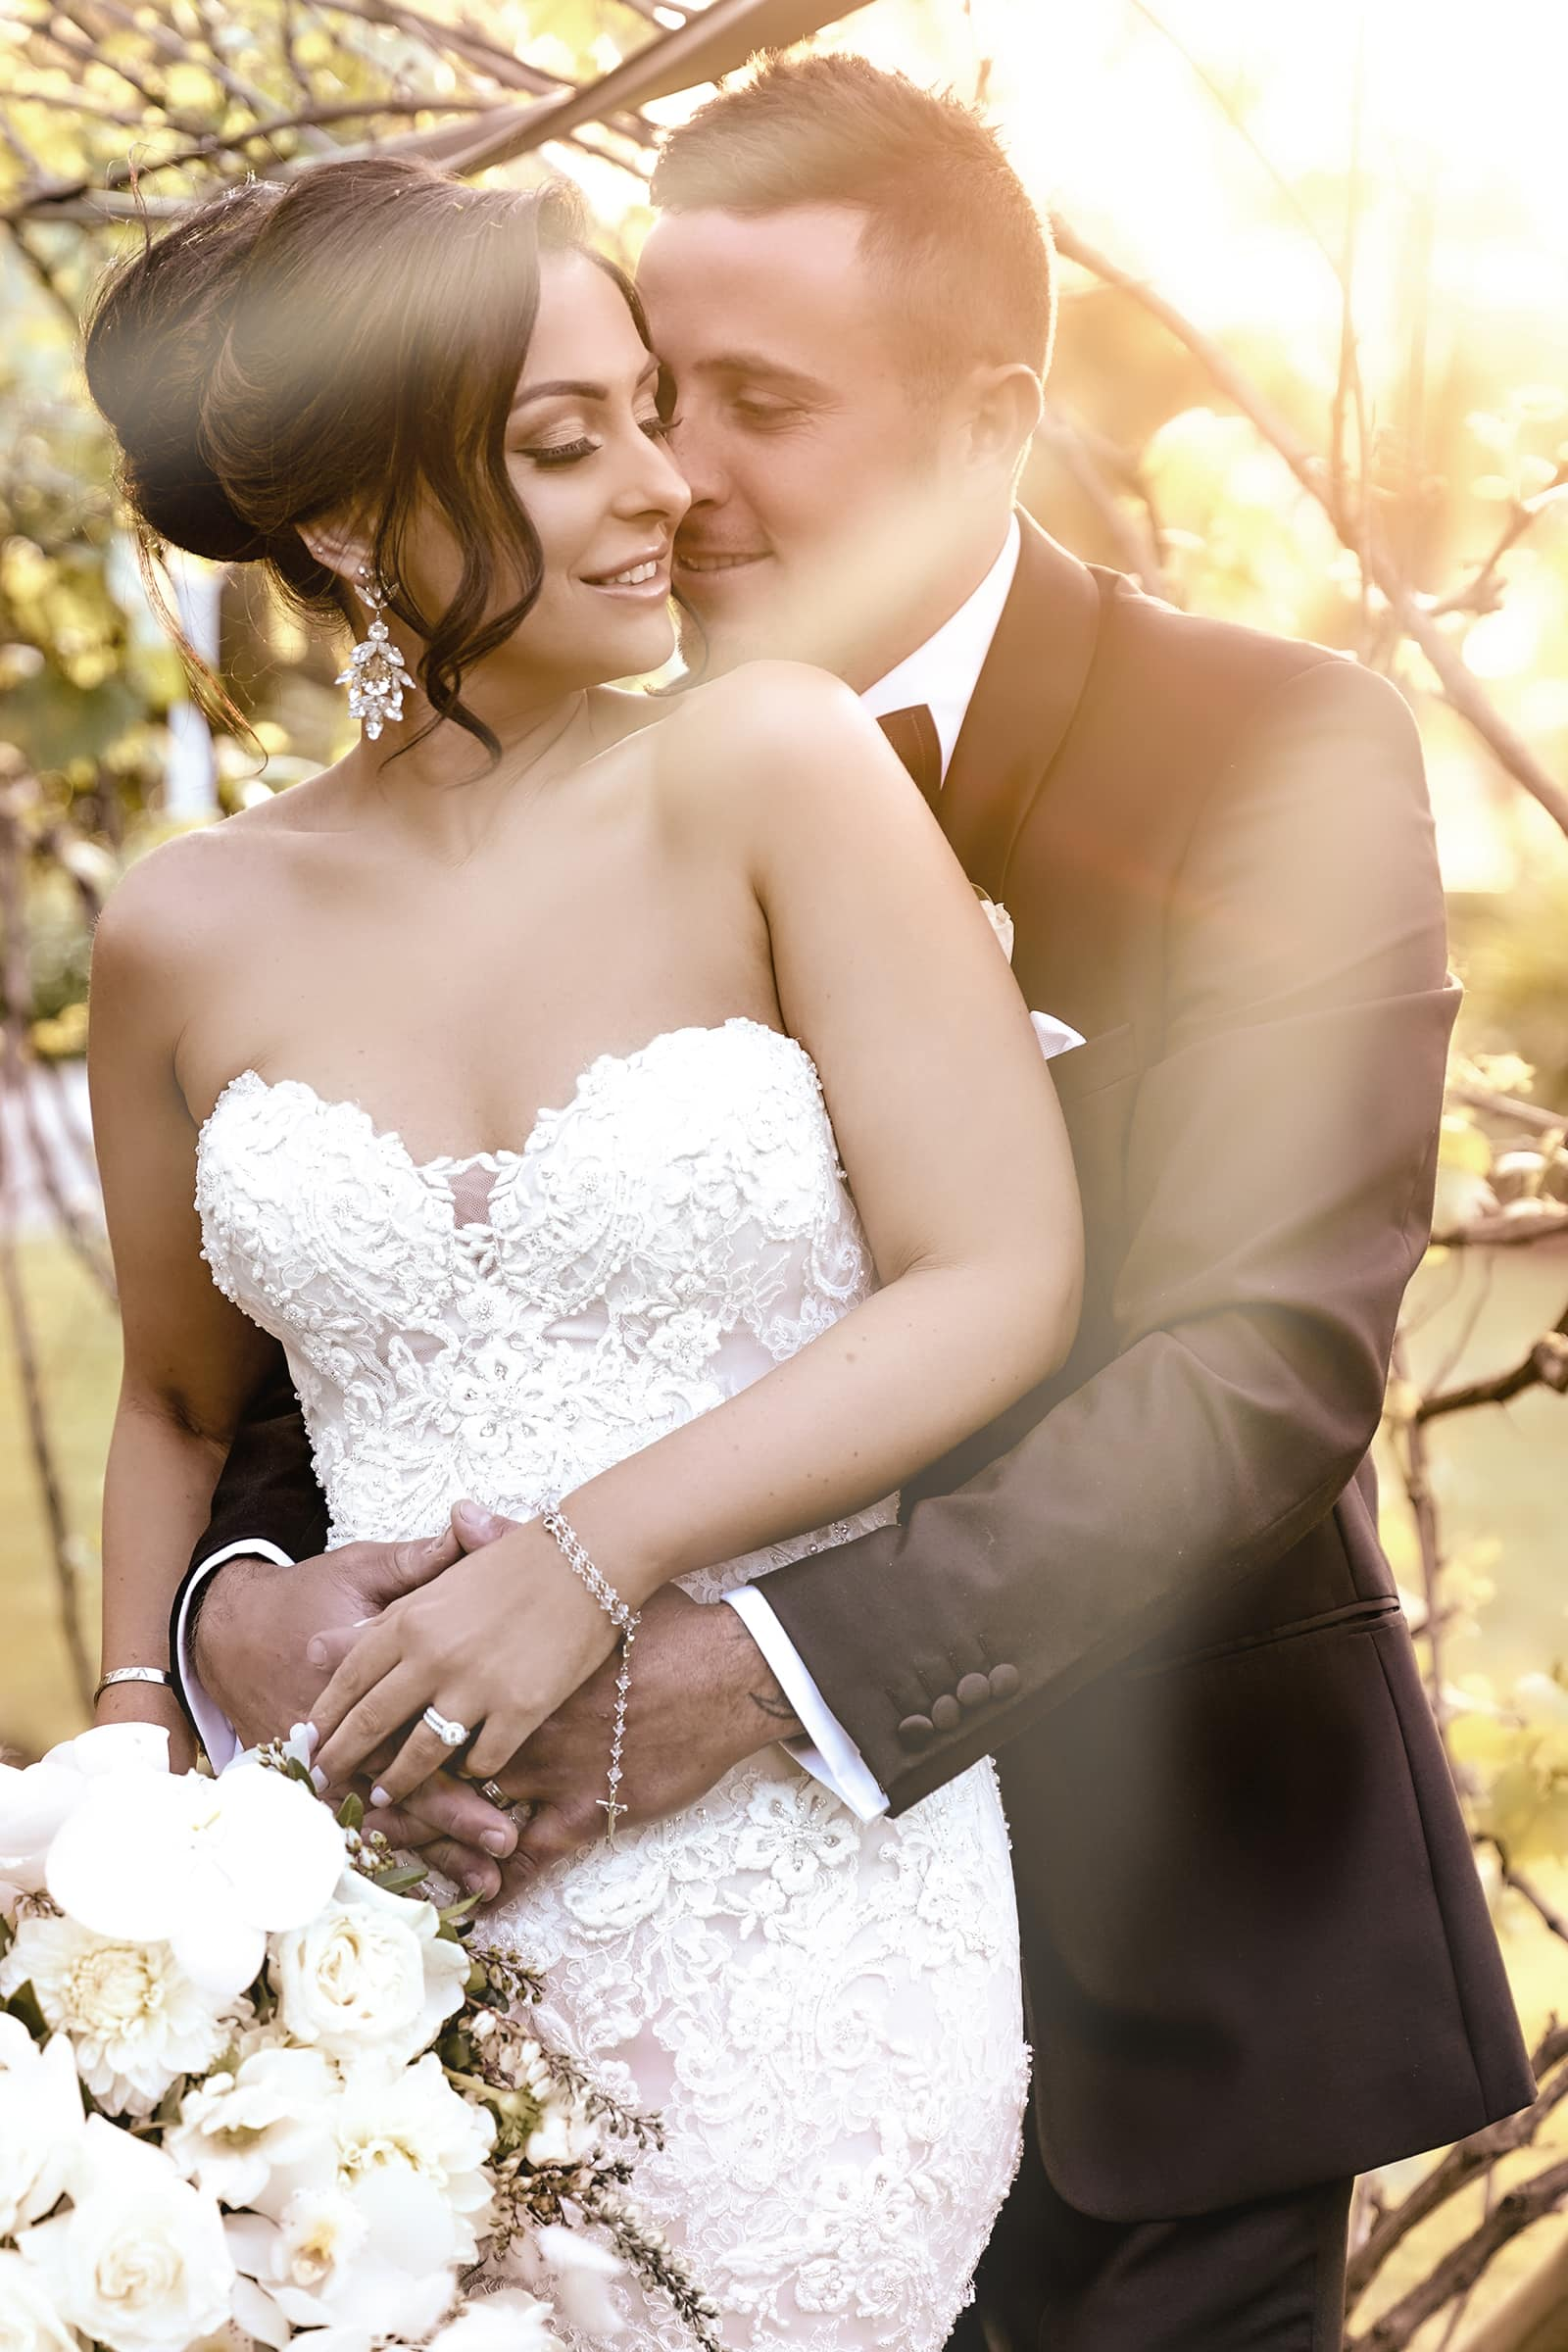 Best Sydney wedding photographer videographer The Camera Crew Wedding photography packages wedding videography 05